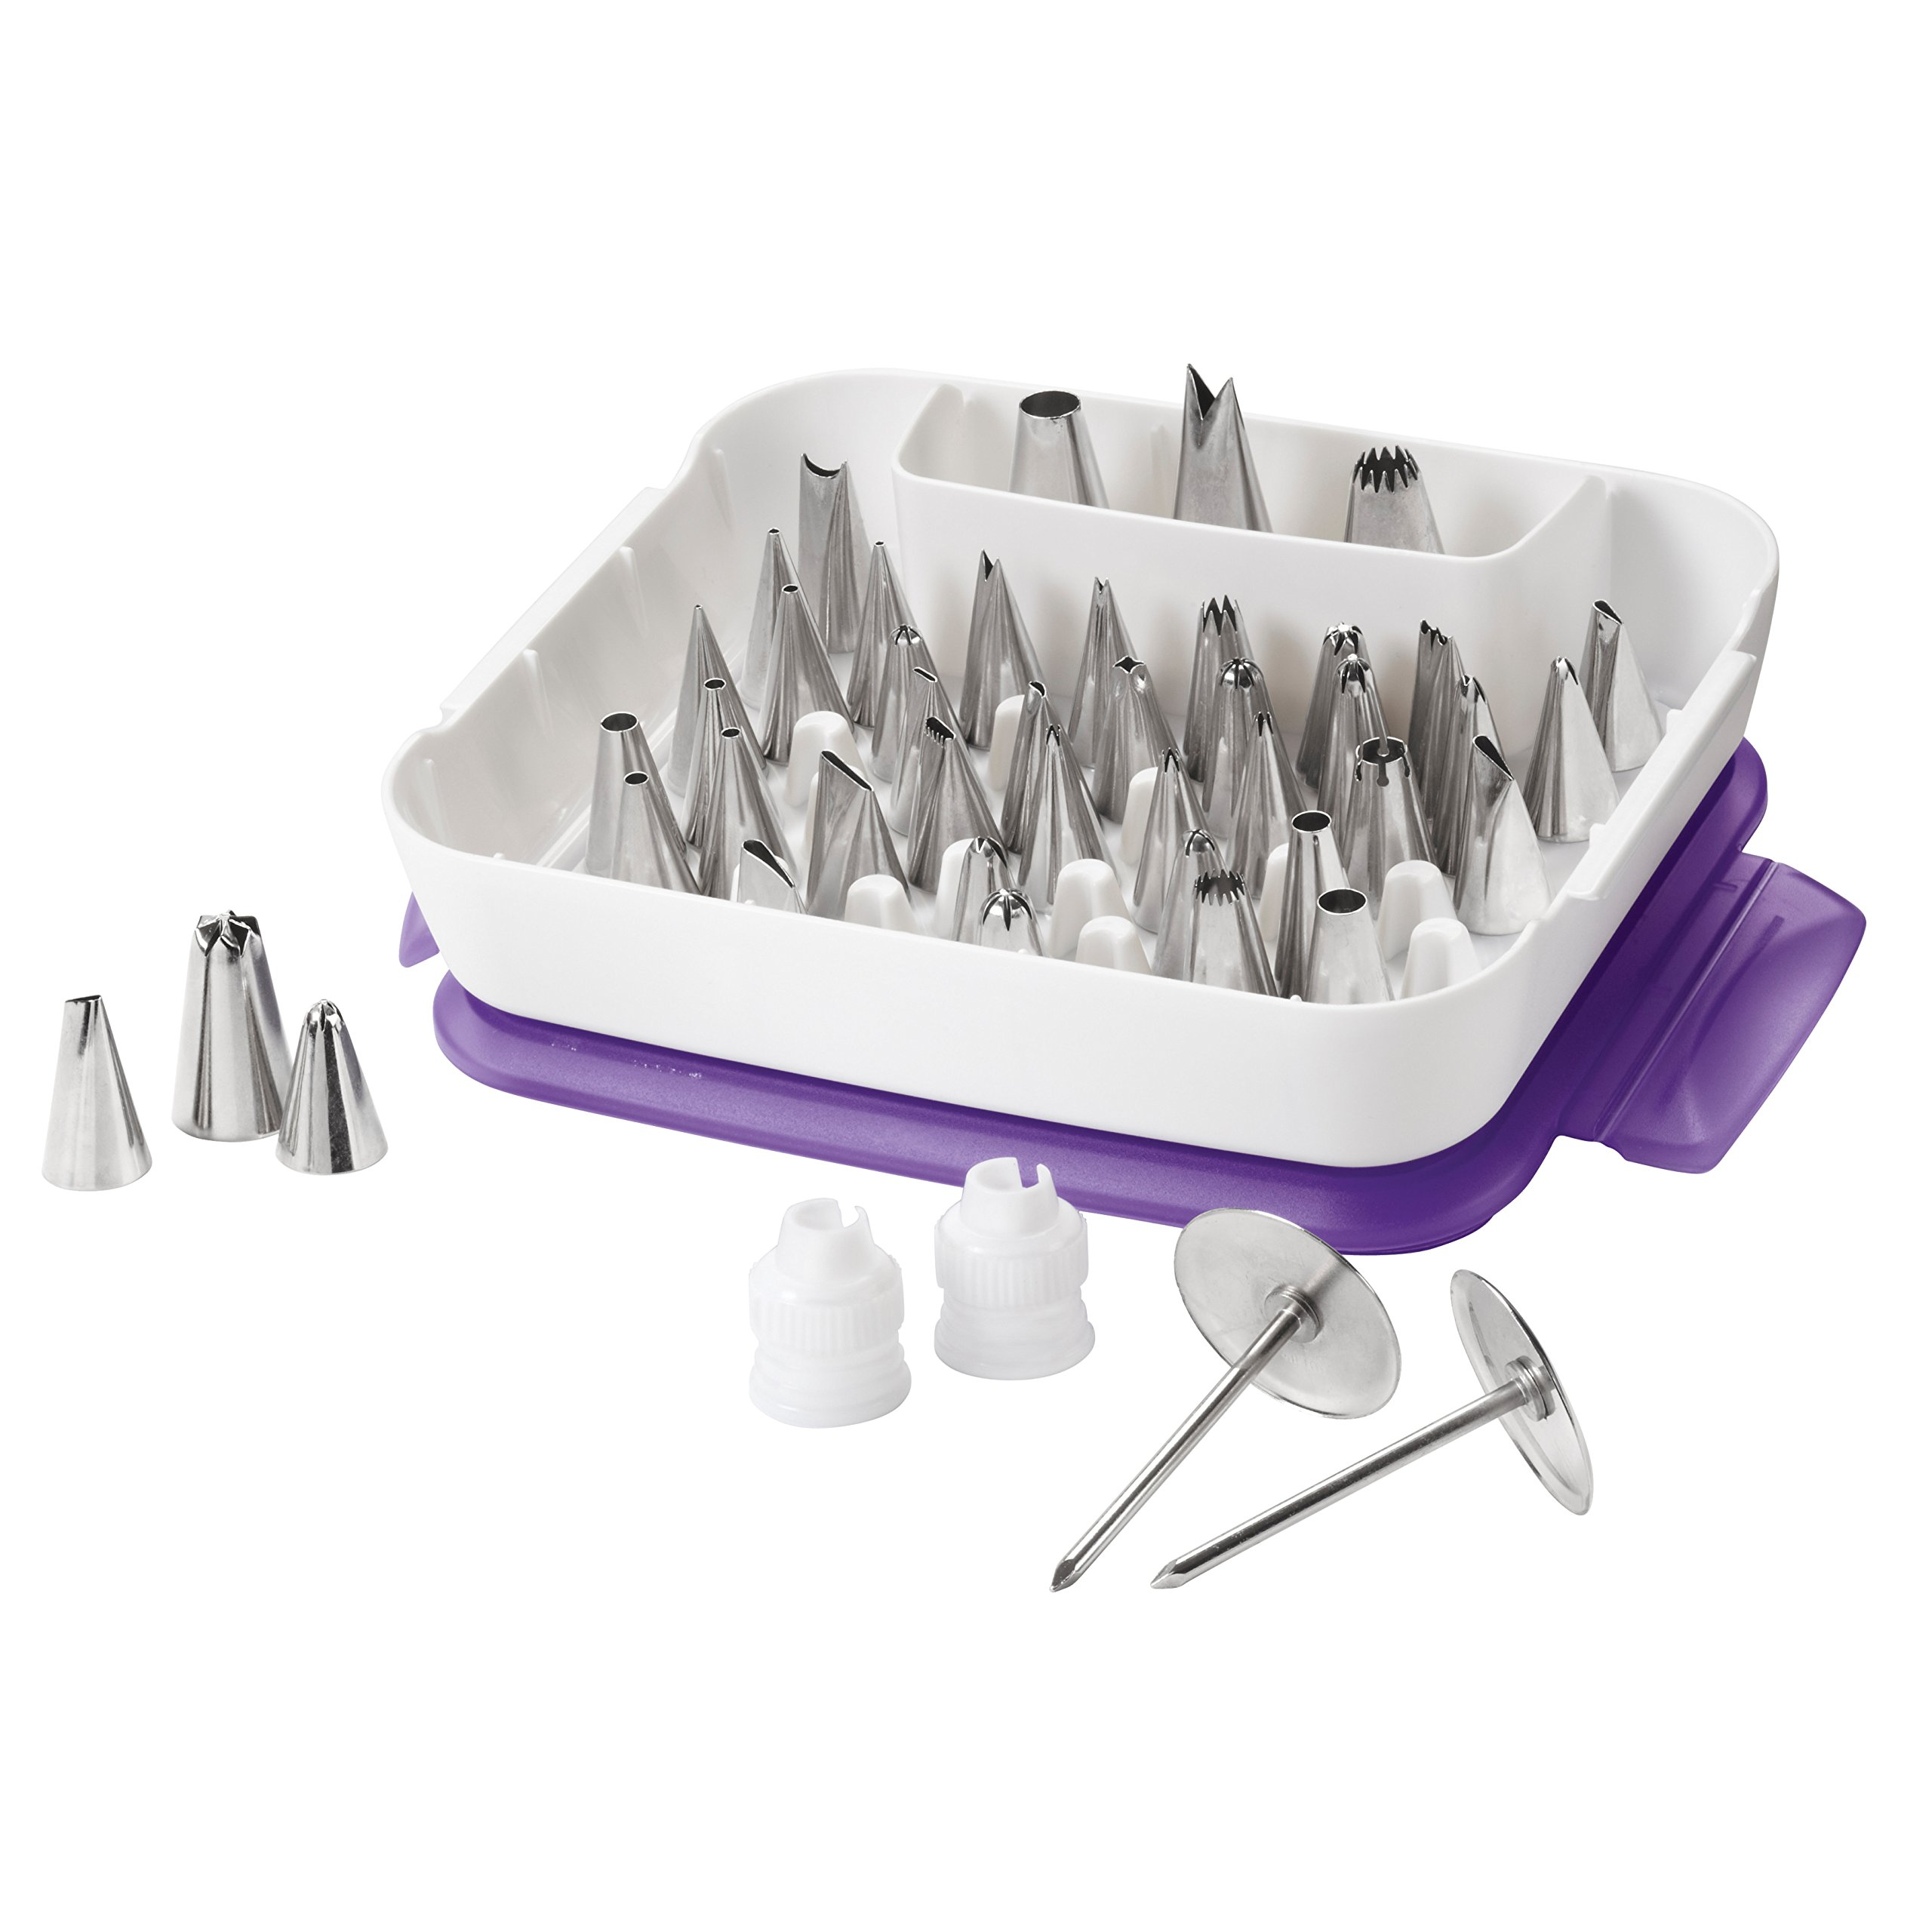 Wilton Master Decorating Tip Set, 55-Piece decorating tips, Cake Decorating Supplies product